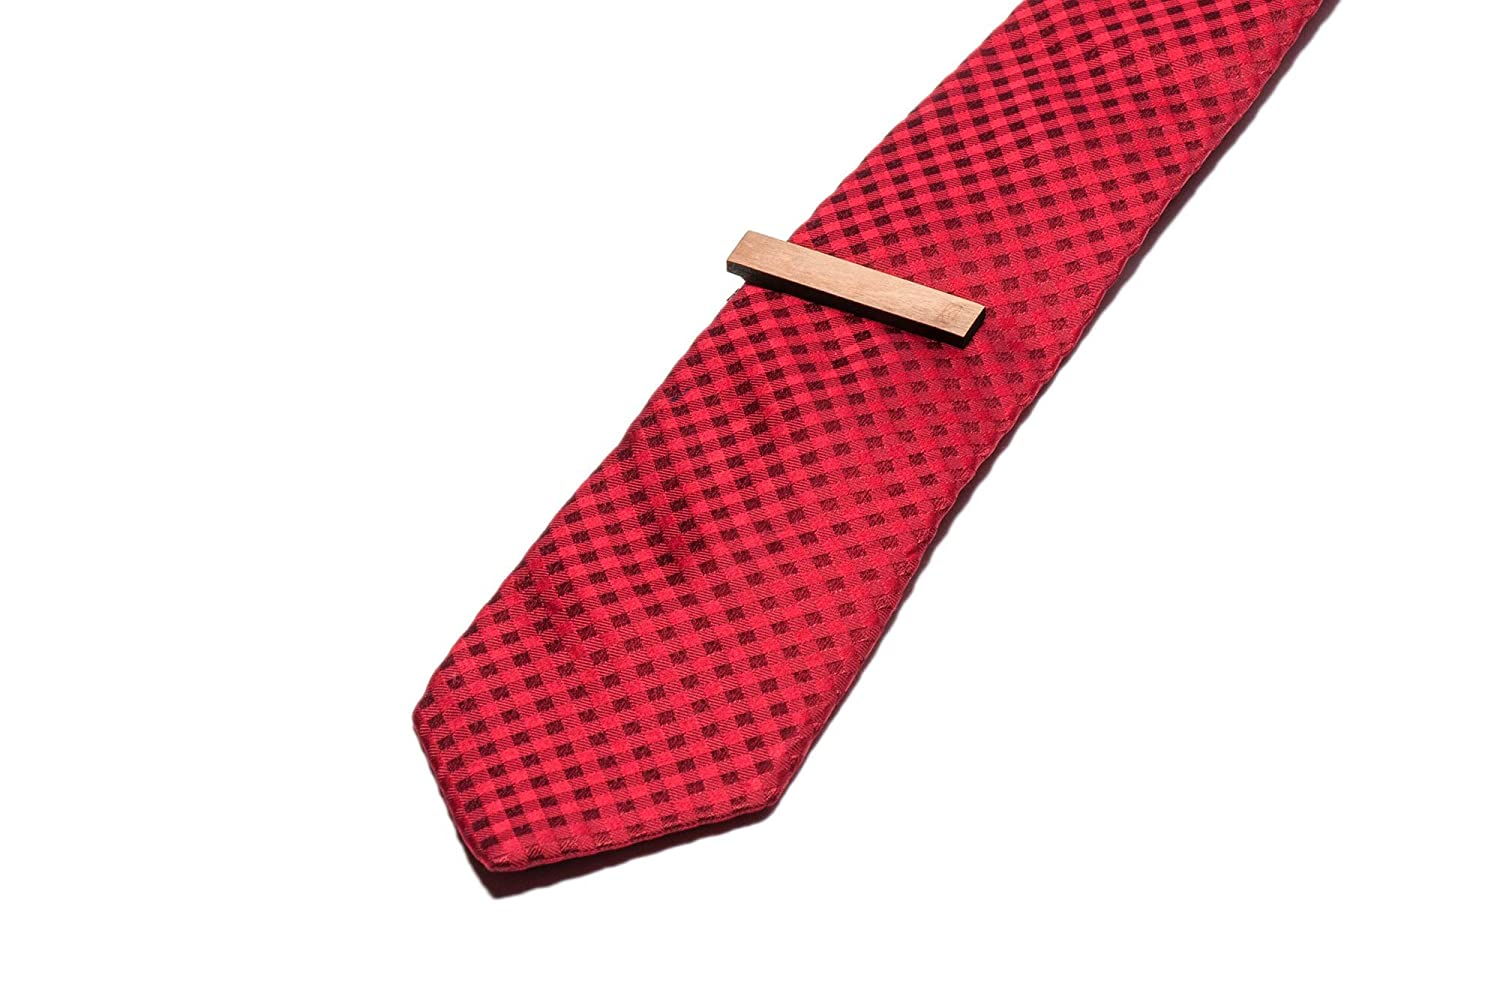 Cherry Wood Tie Bar Engraved in The USA Wooden Accessories Company Wooden Tie Clips with Laser Engraved Left Road Sign Design